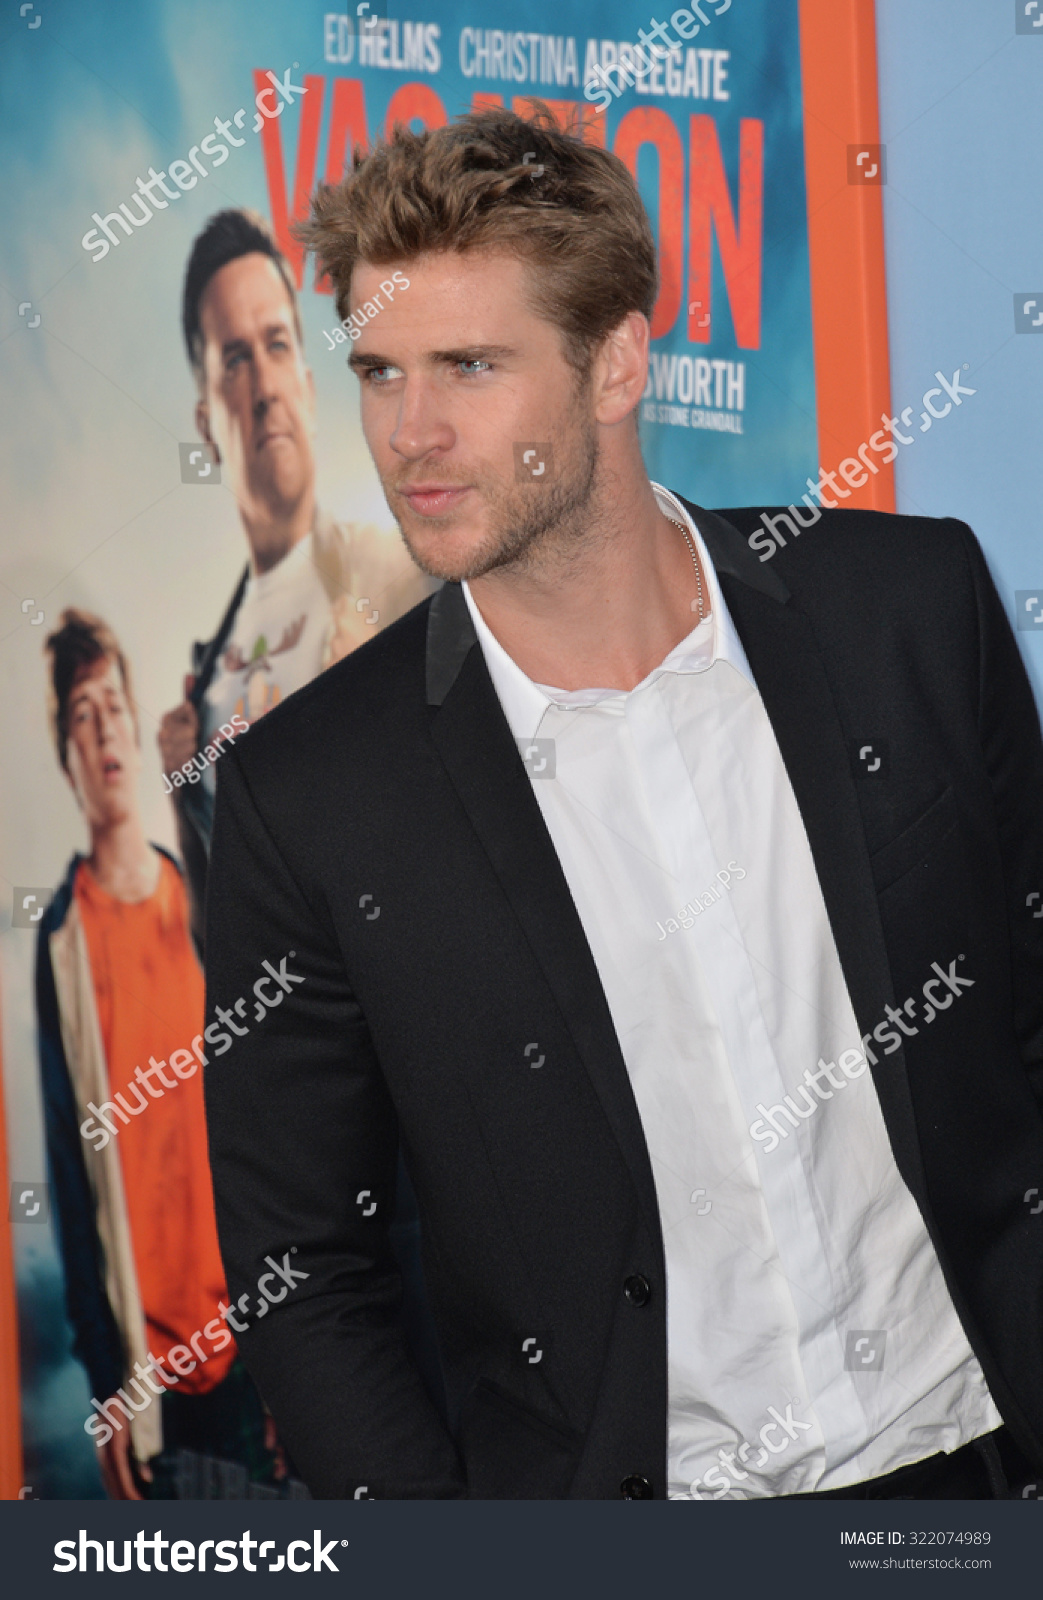 LOS ANGELES CA JULY 27 2015 Liam Hemsworth at the premiere of Vacation at the Regency Village Theatre Westwood